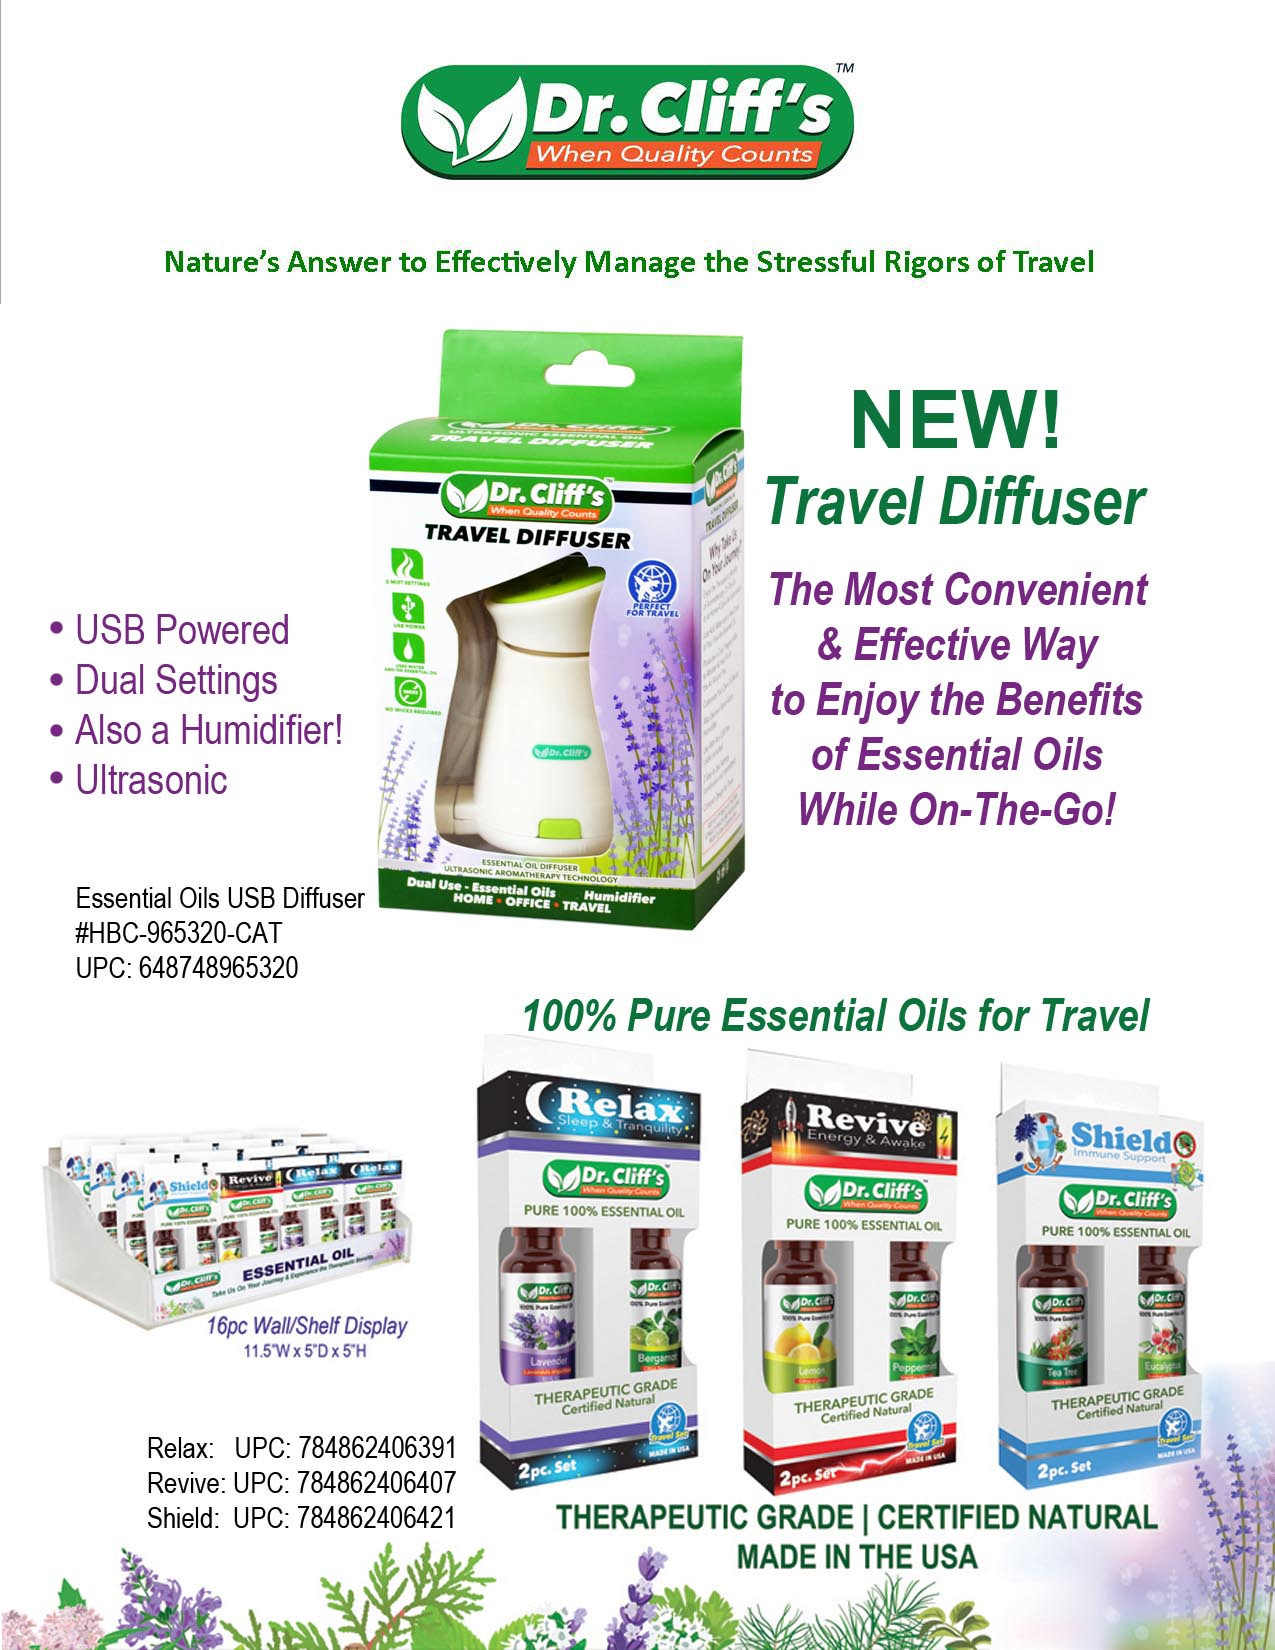 Travel Diffuser & Essential Oils